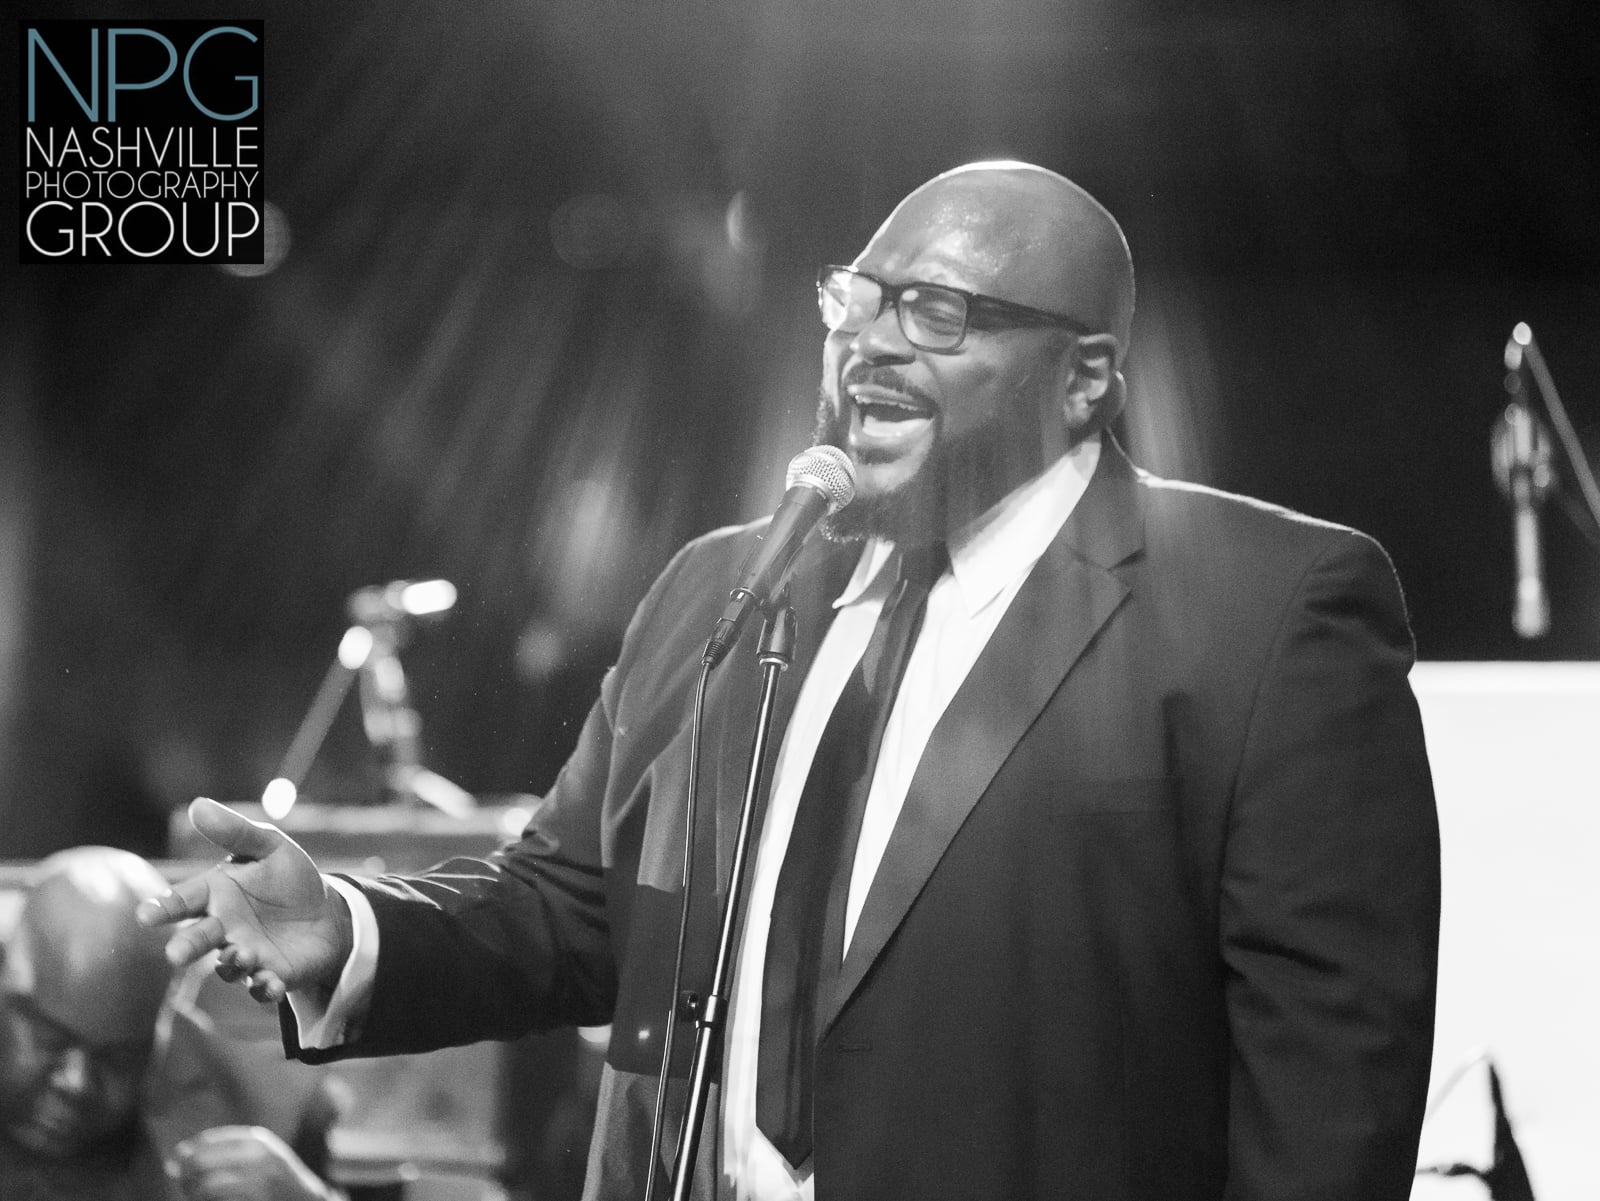 American Idol winner Ruben Studdard serenaded the guests - Nashville wedding photography